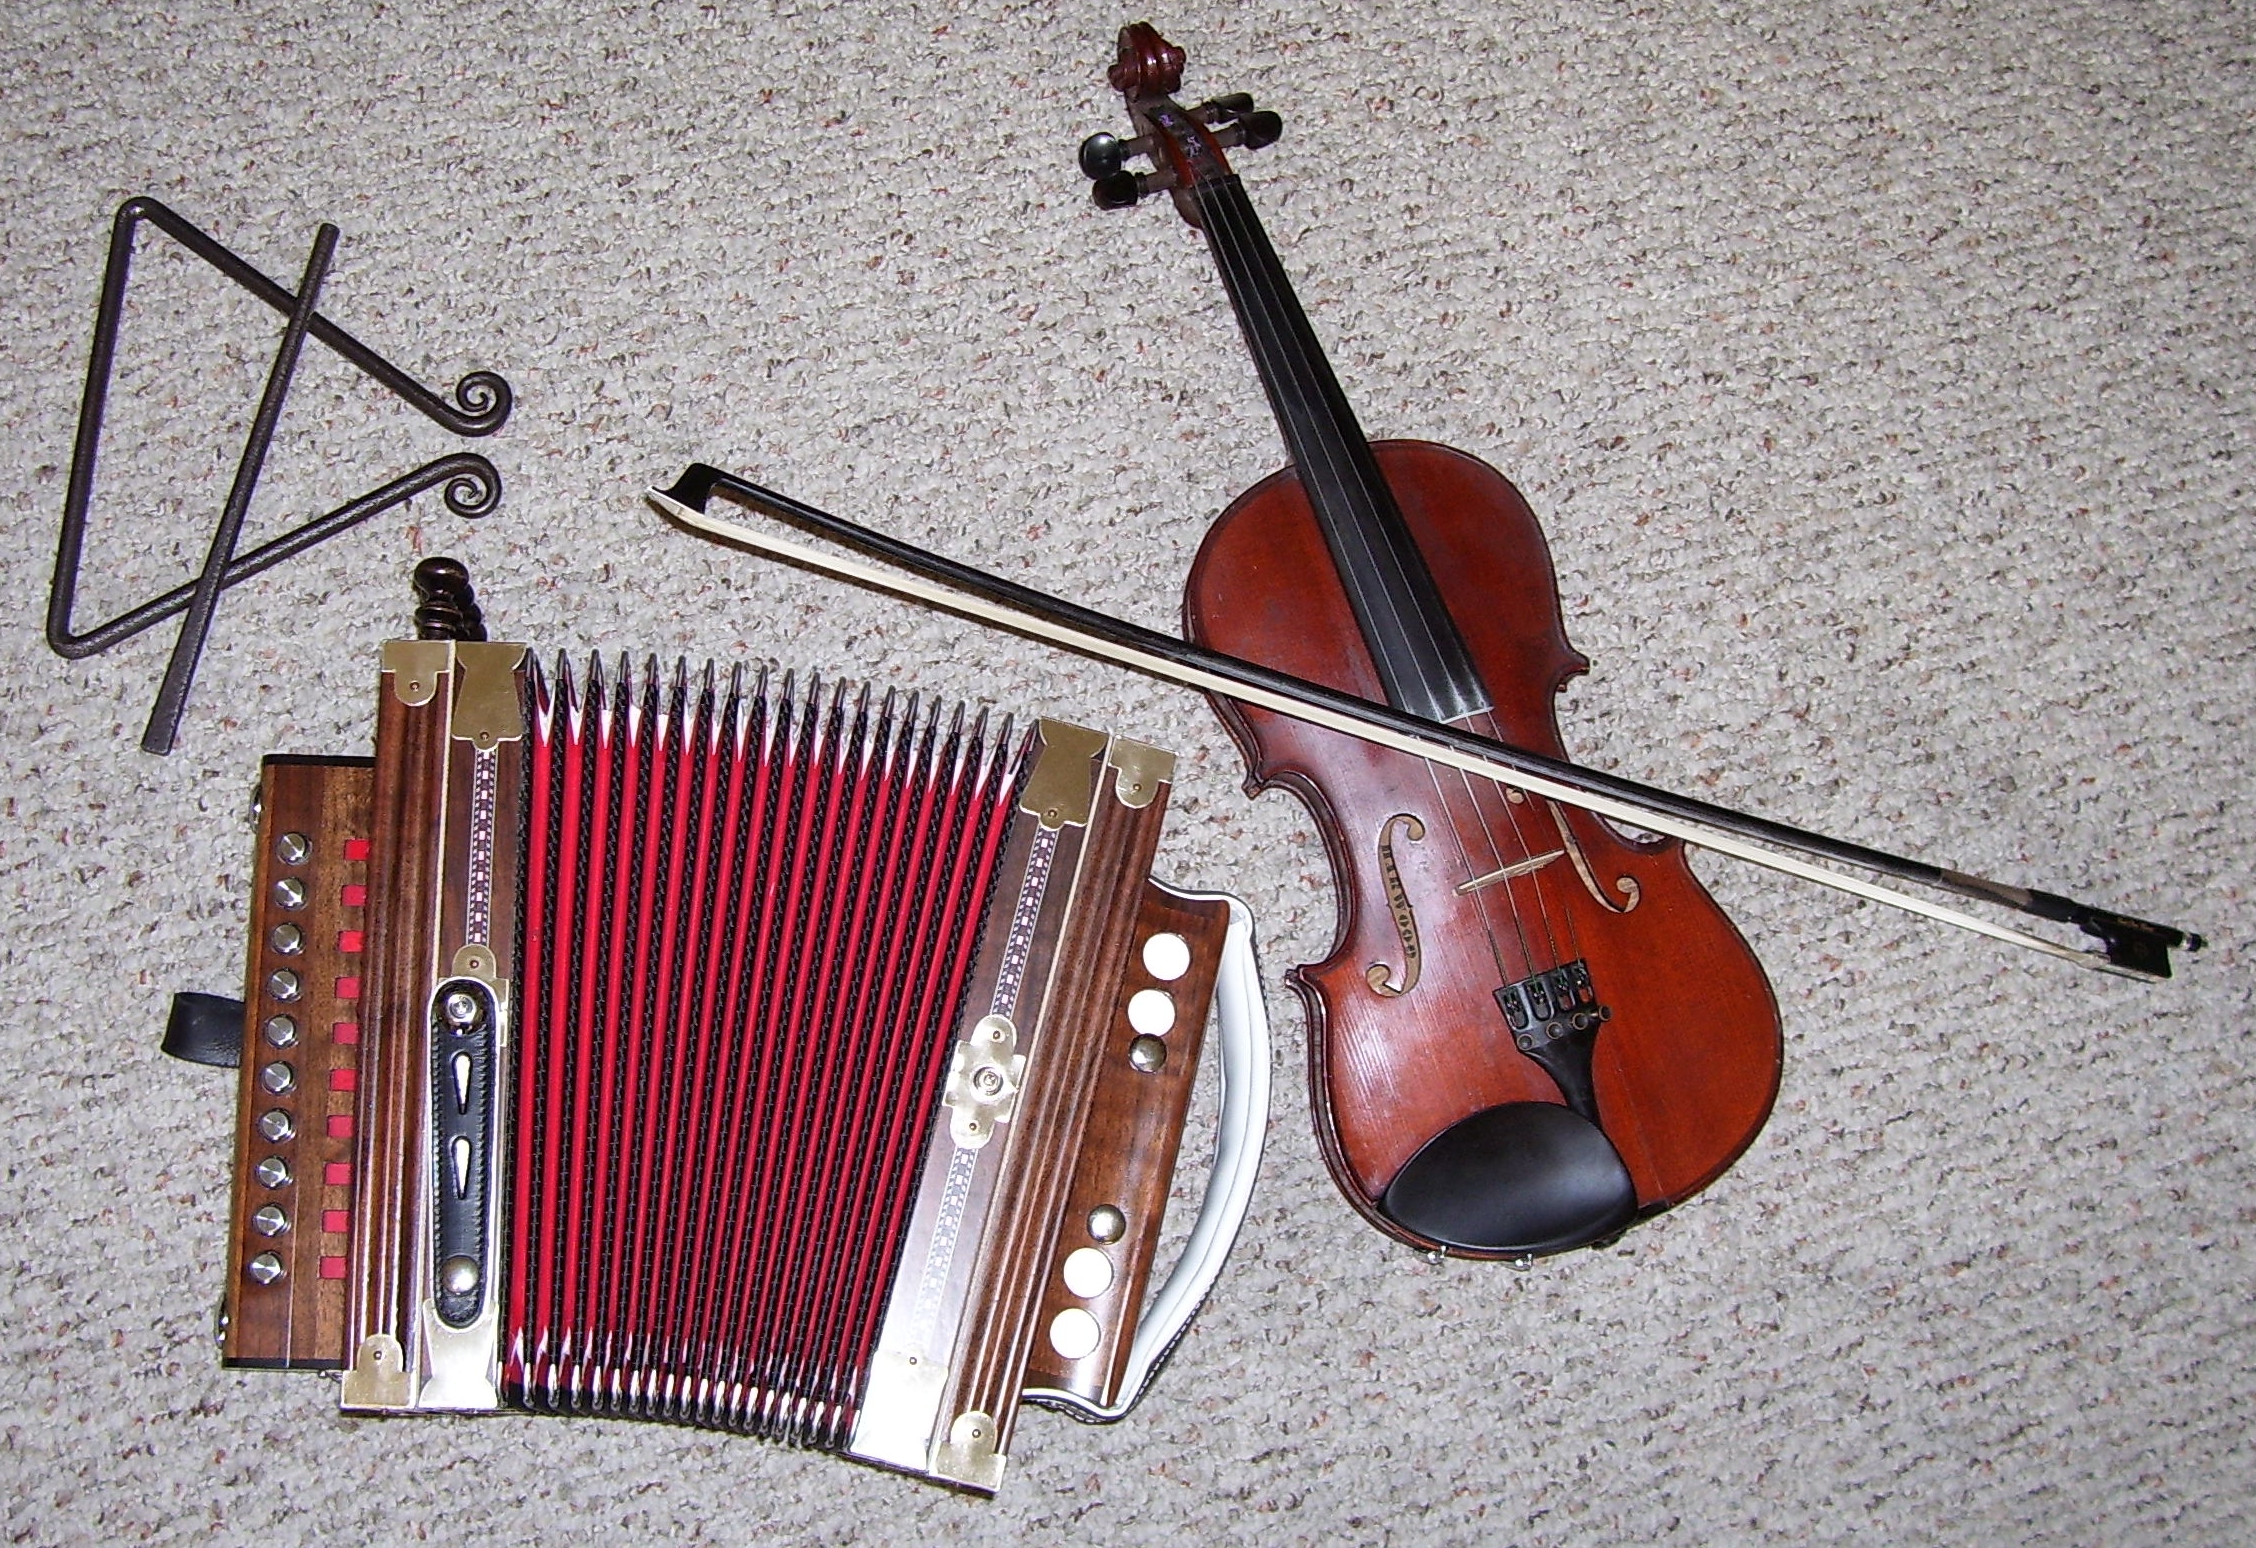 http://fr.academic.ru/pictures/frwiki/67/Cajun_instruments.jpg